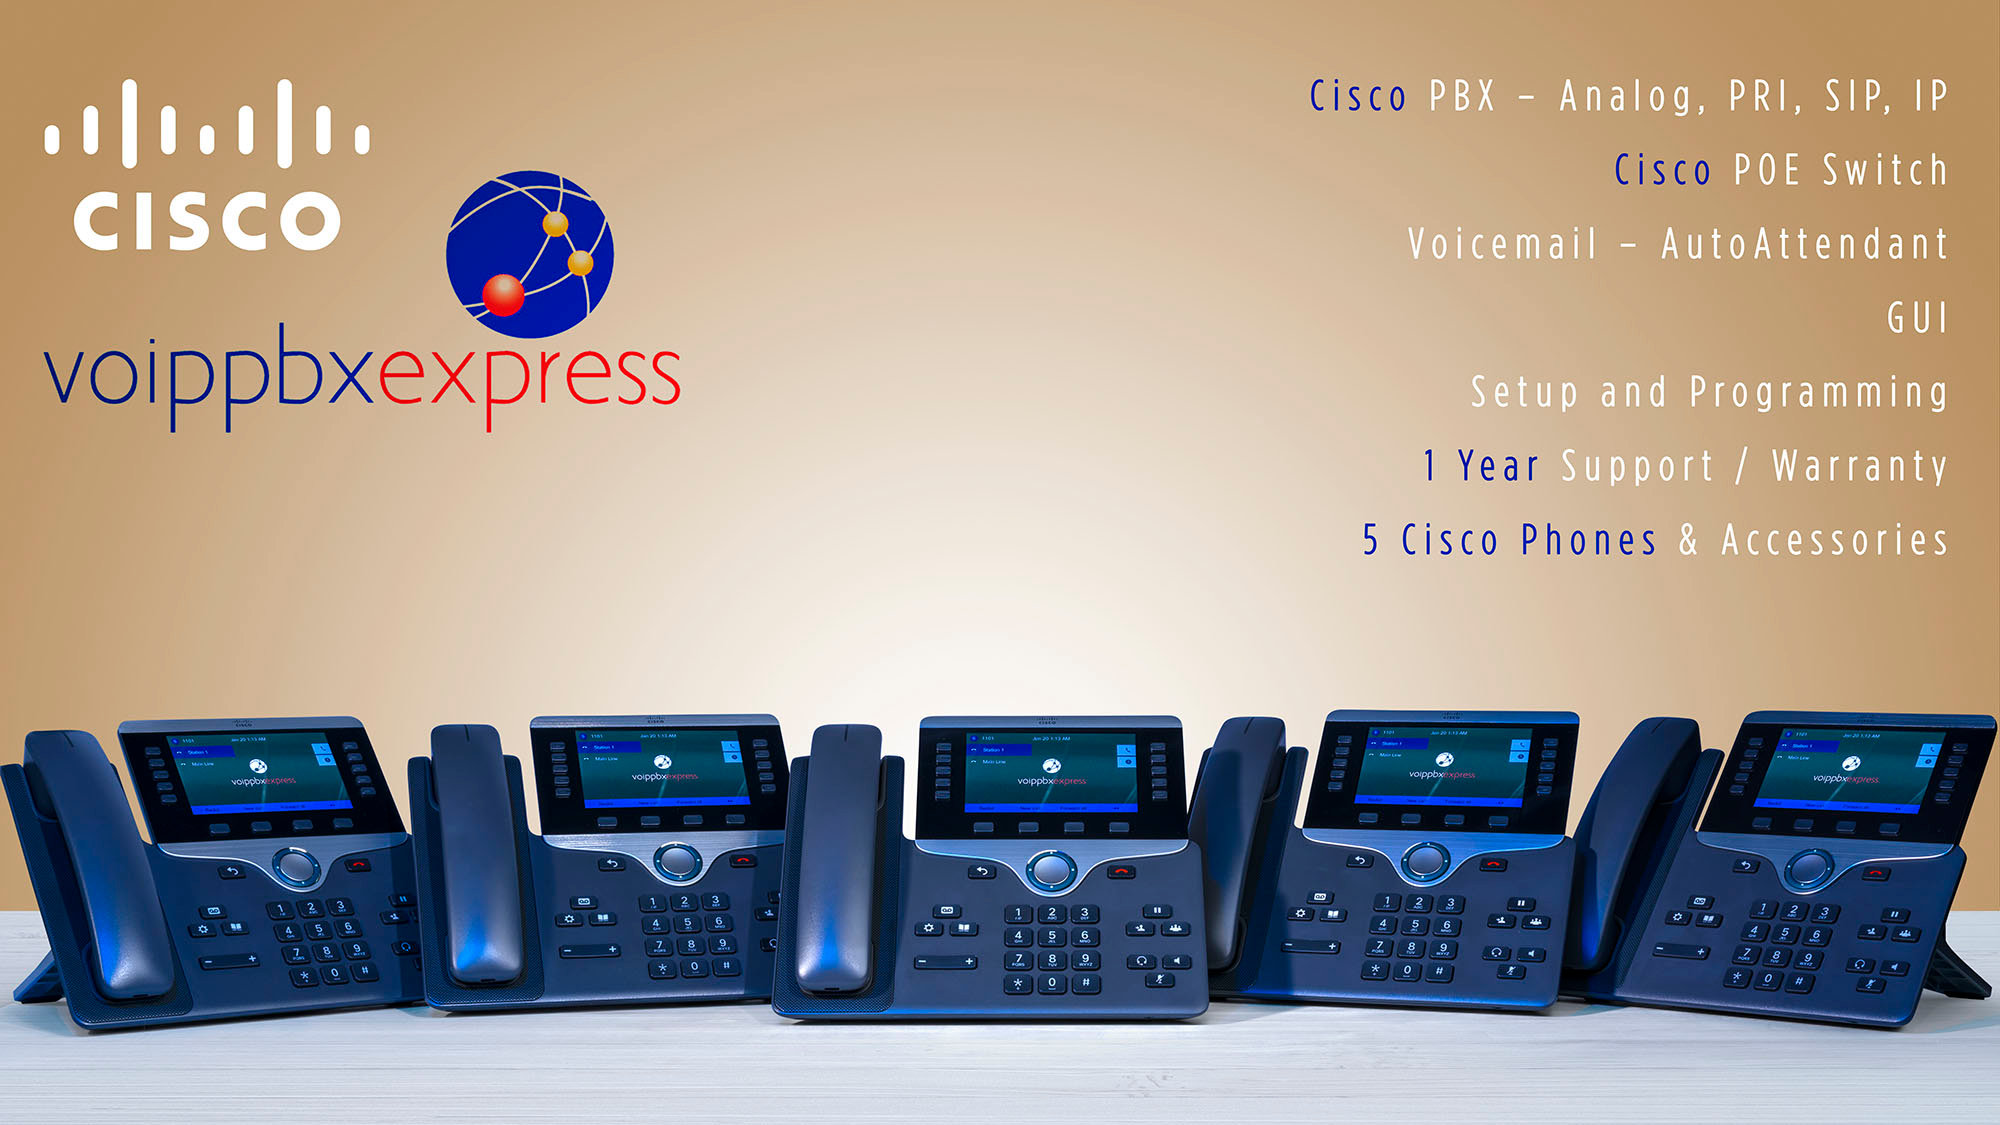 Cisco sip phone setup